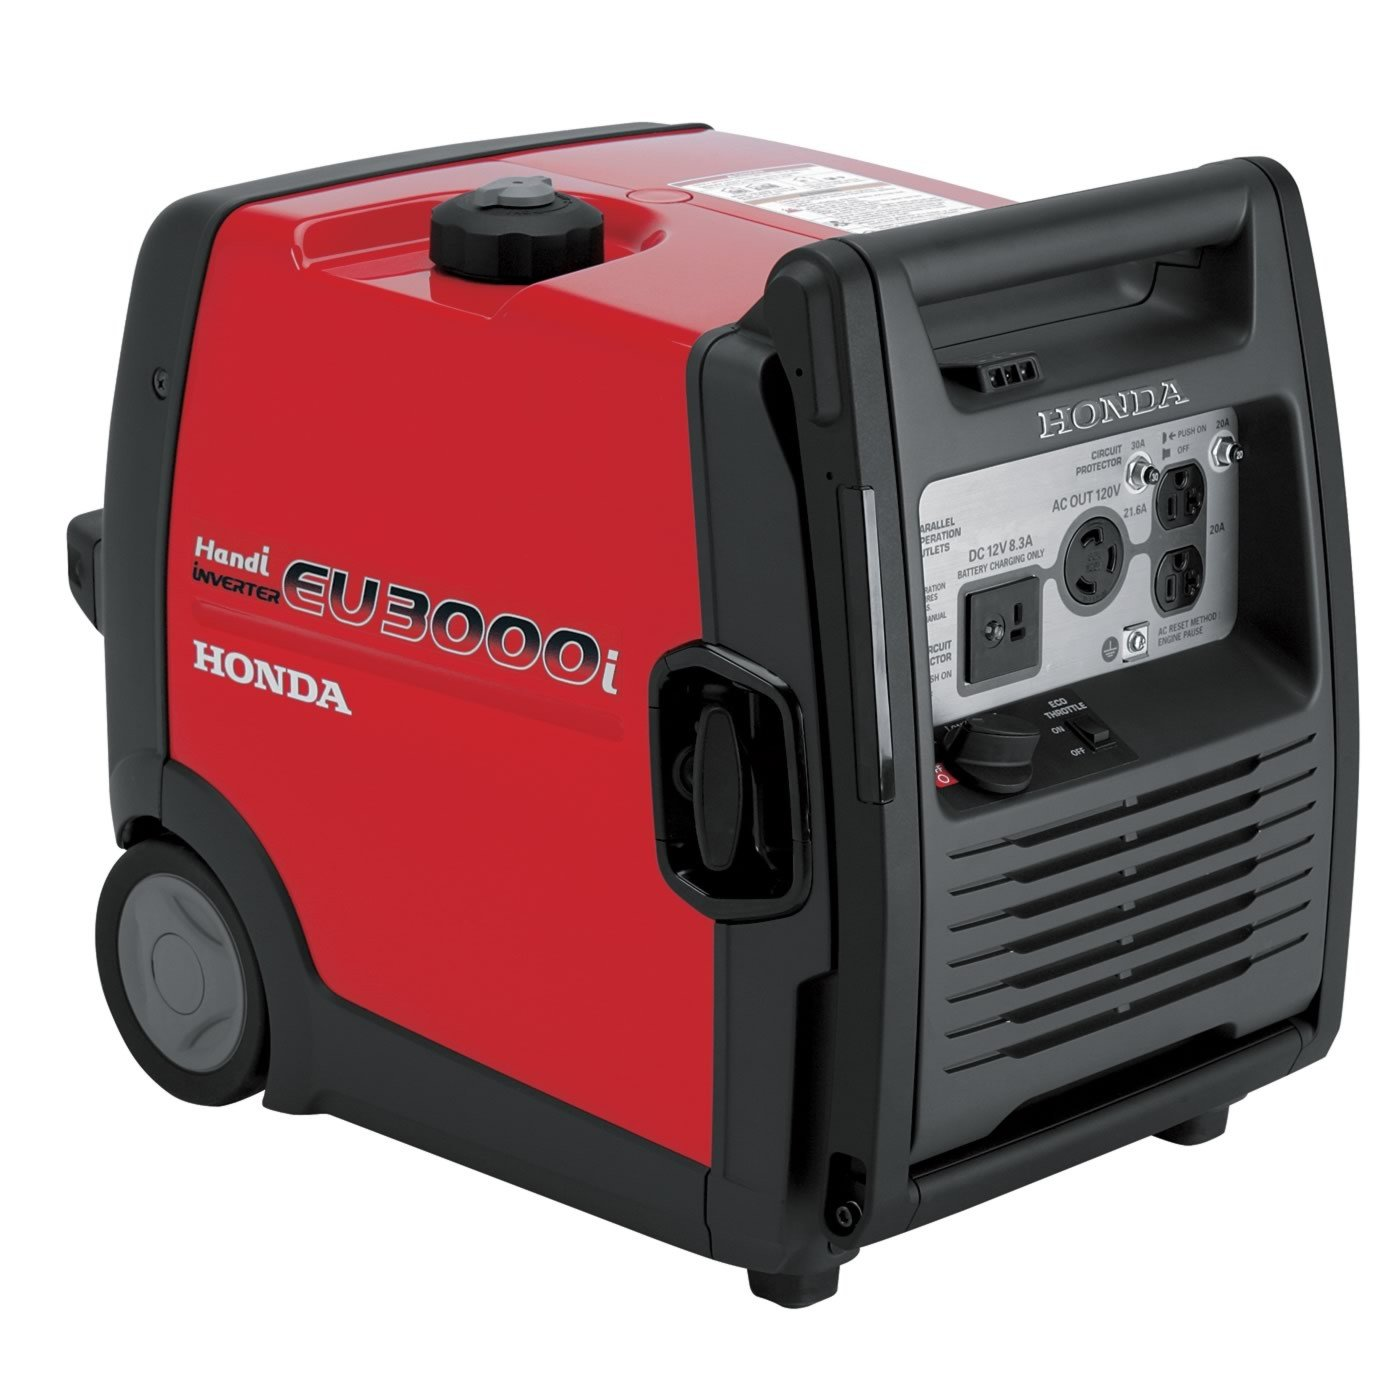 best portable inverter generator 3000 watts - honda eu3000i handi